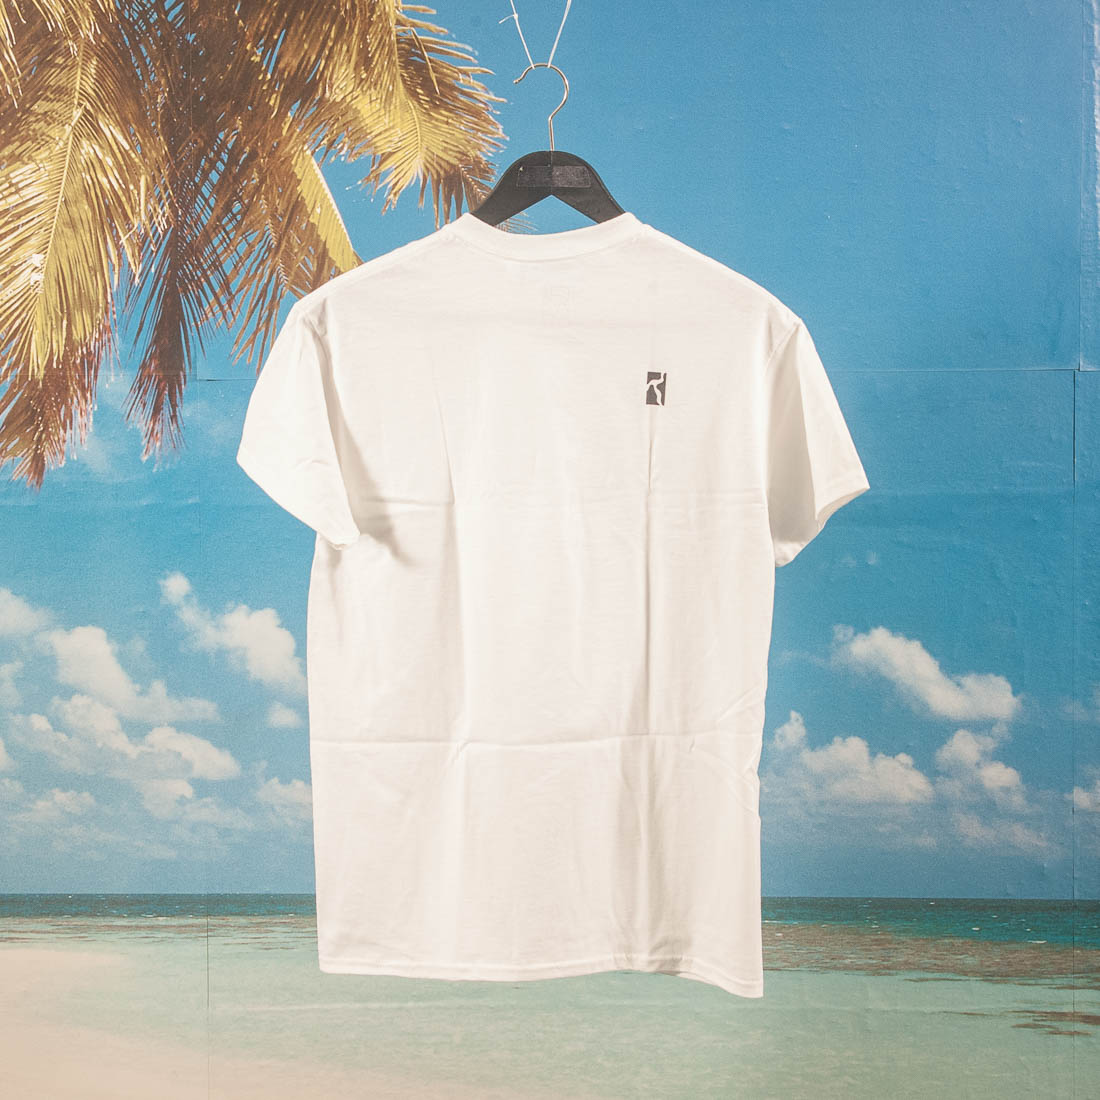 Poetic Collective - Fluid T-Shirt - White